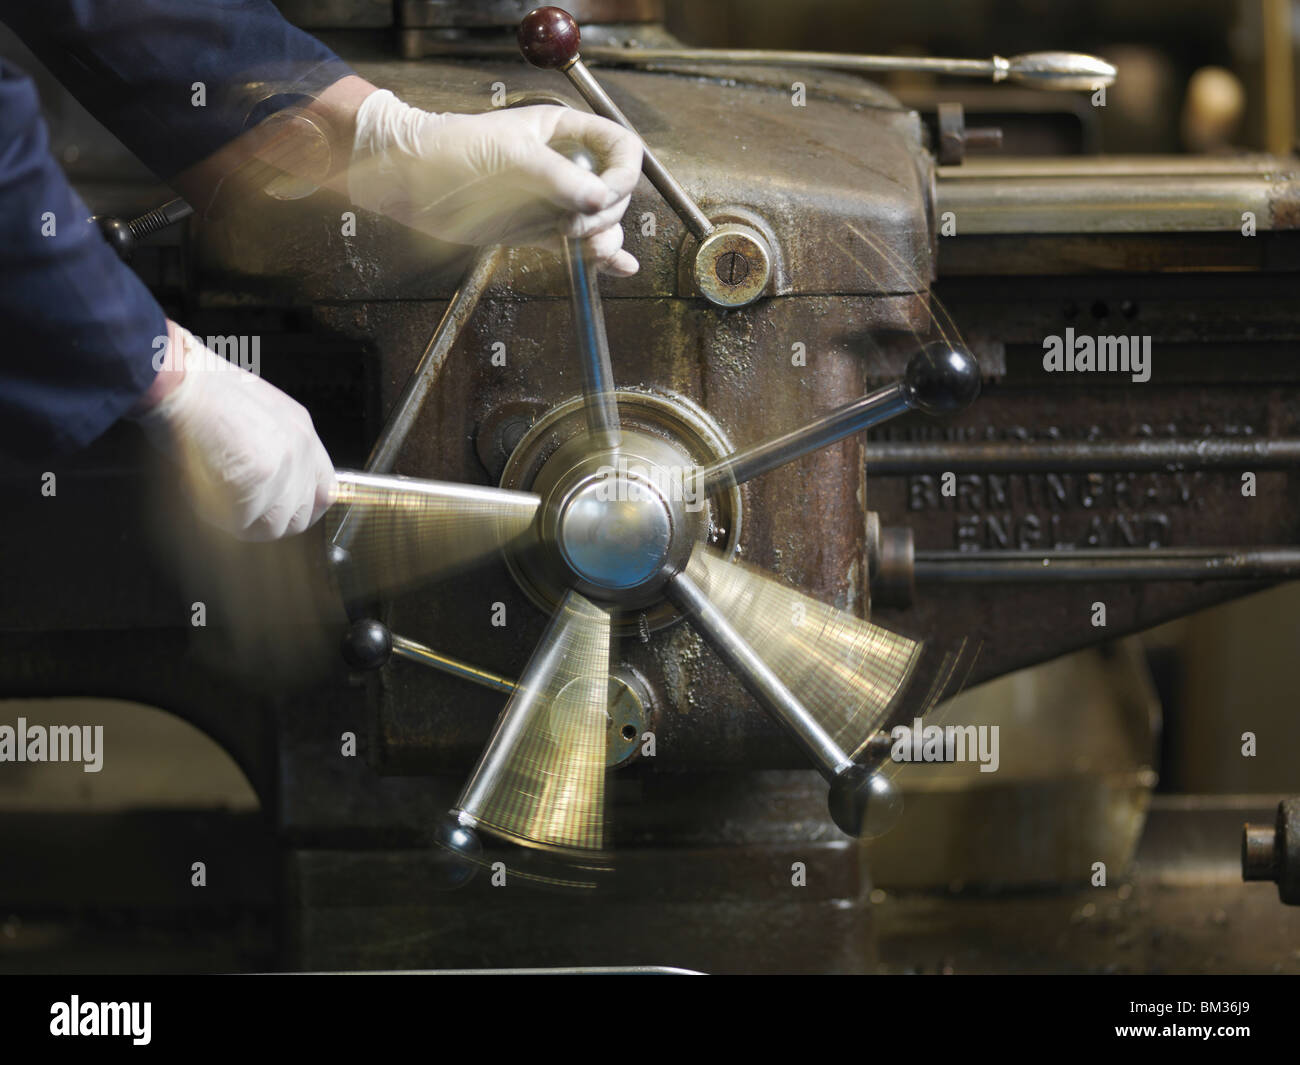 Hands Operating Lever On Machine - Stock Image